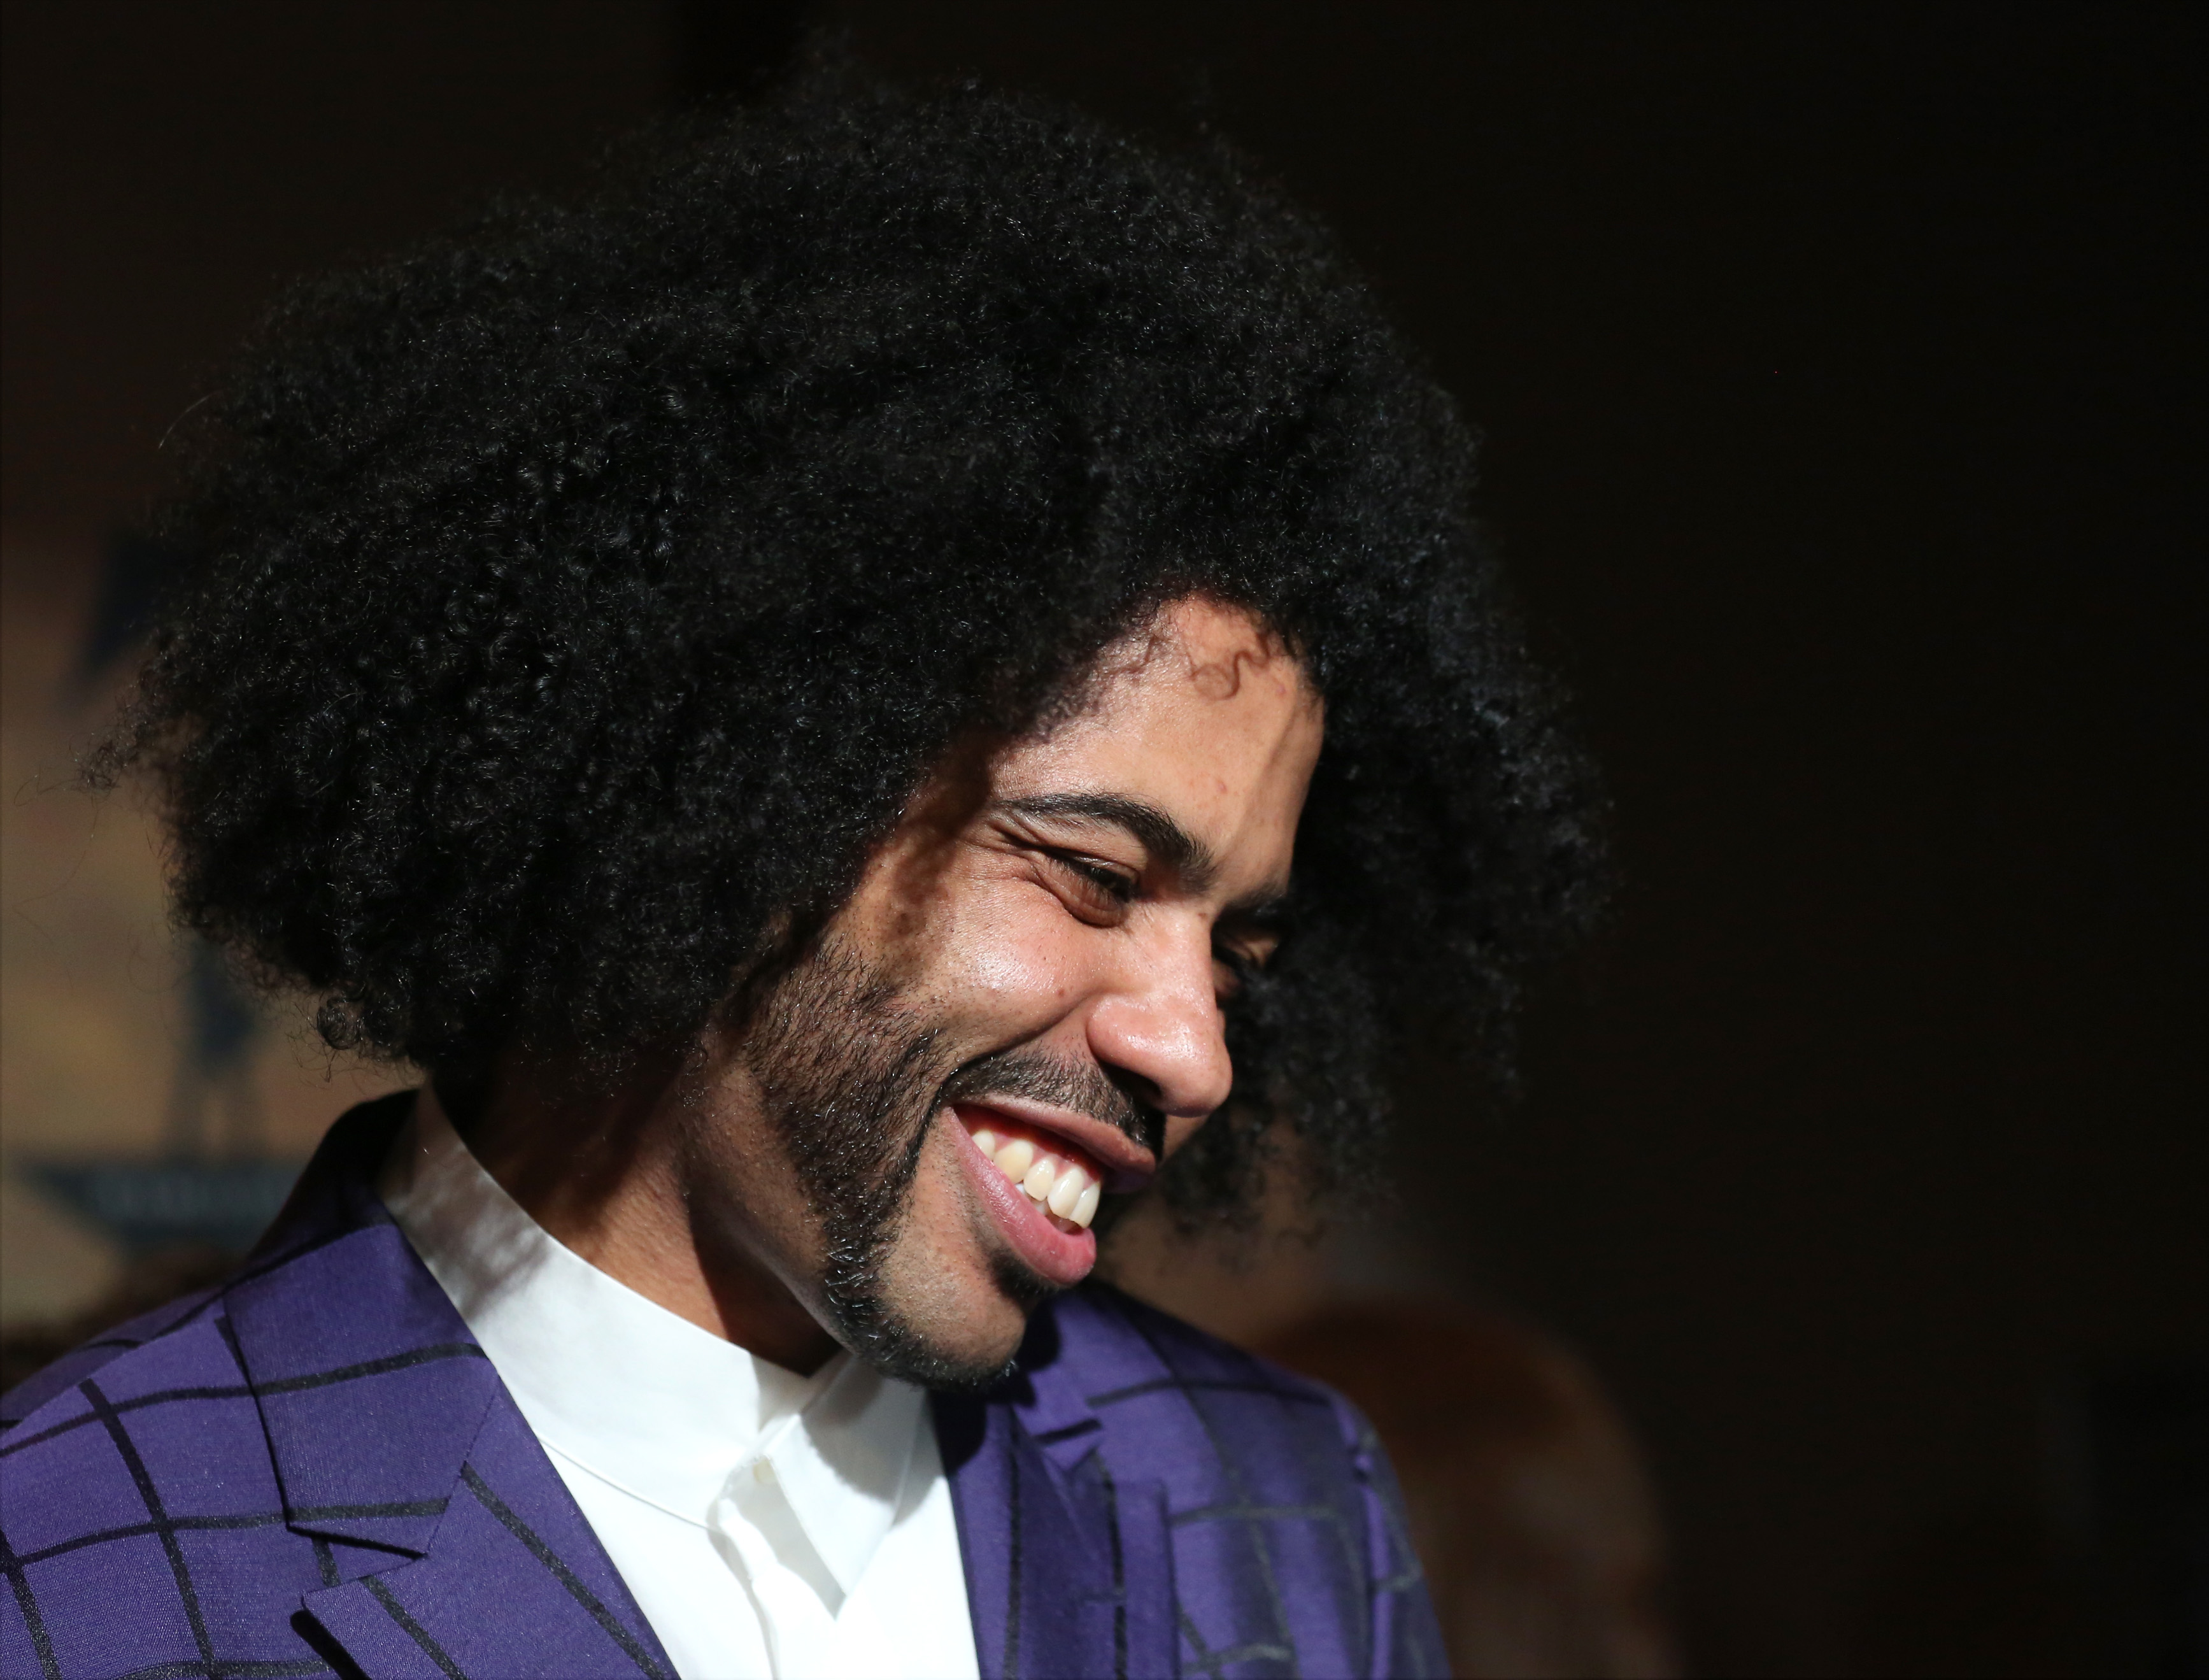 Daveed Diggs attends the 'Hamilton' Broadway Opening Night in New York City, on August 6, 2015.